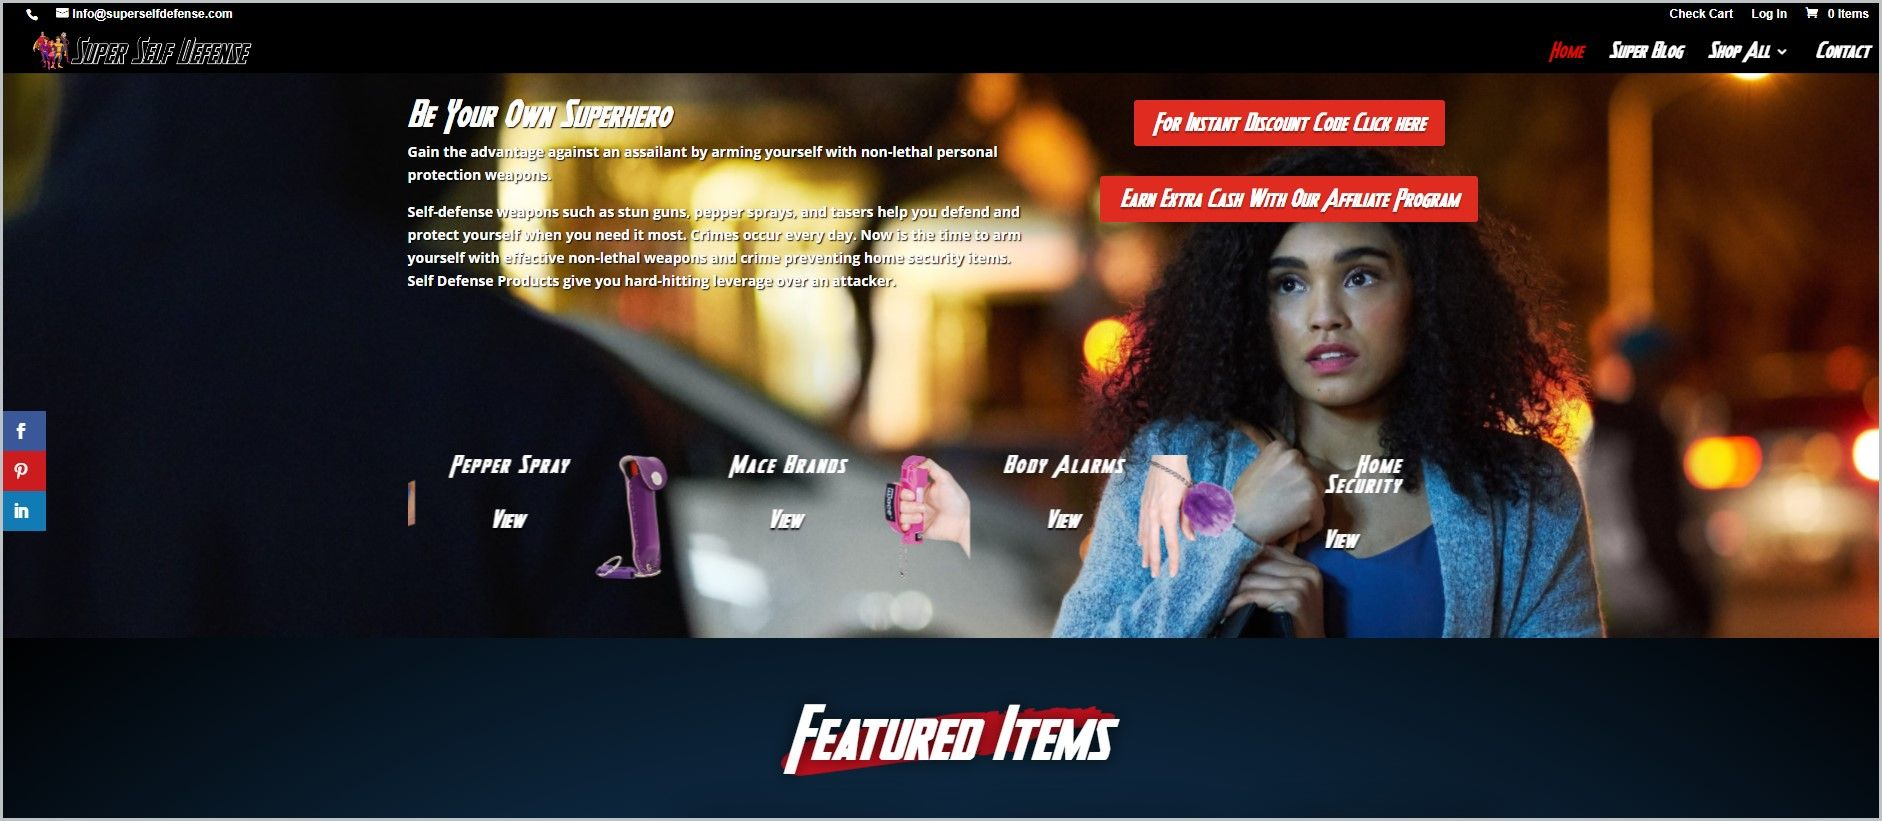 screenshot of Super Self Defense homepage, with black header with the website's name and main navigation menu, with a picture of a woman on a street holding on to her bag looking straight ahead